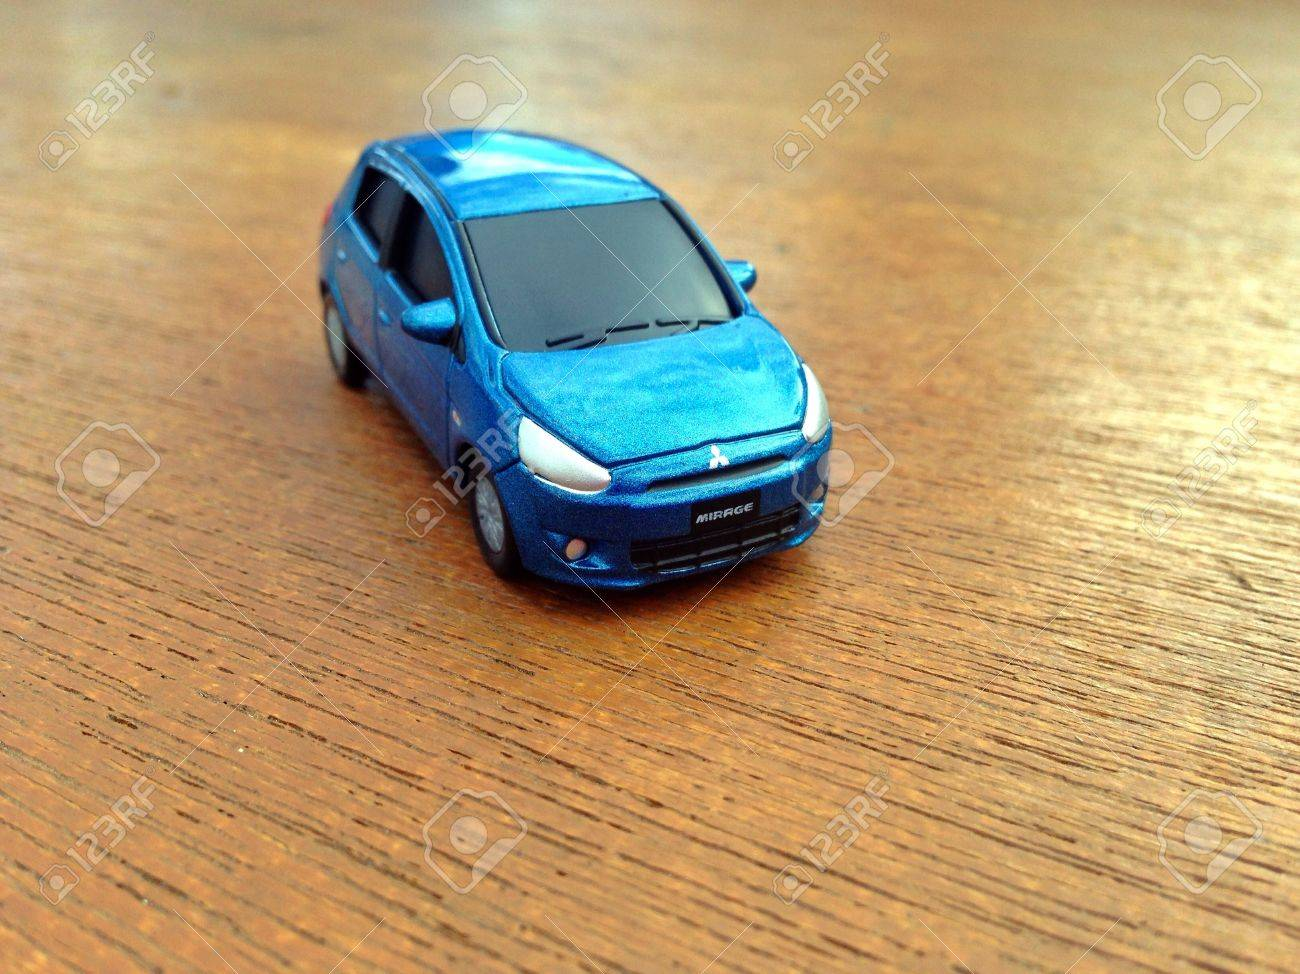 mitsubishi mirage toy car stock photo picture and royalty free